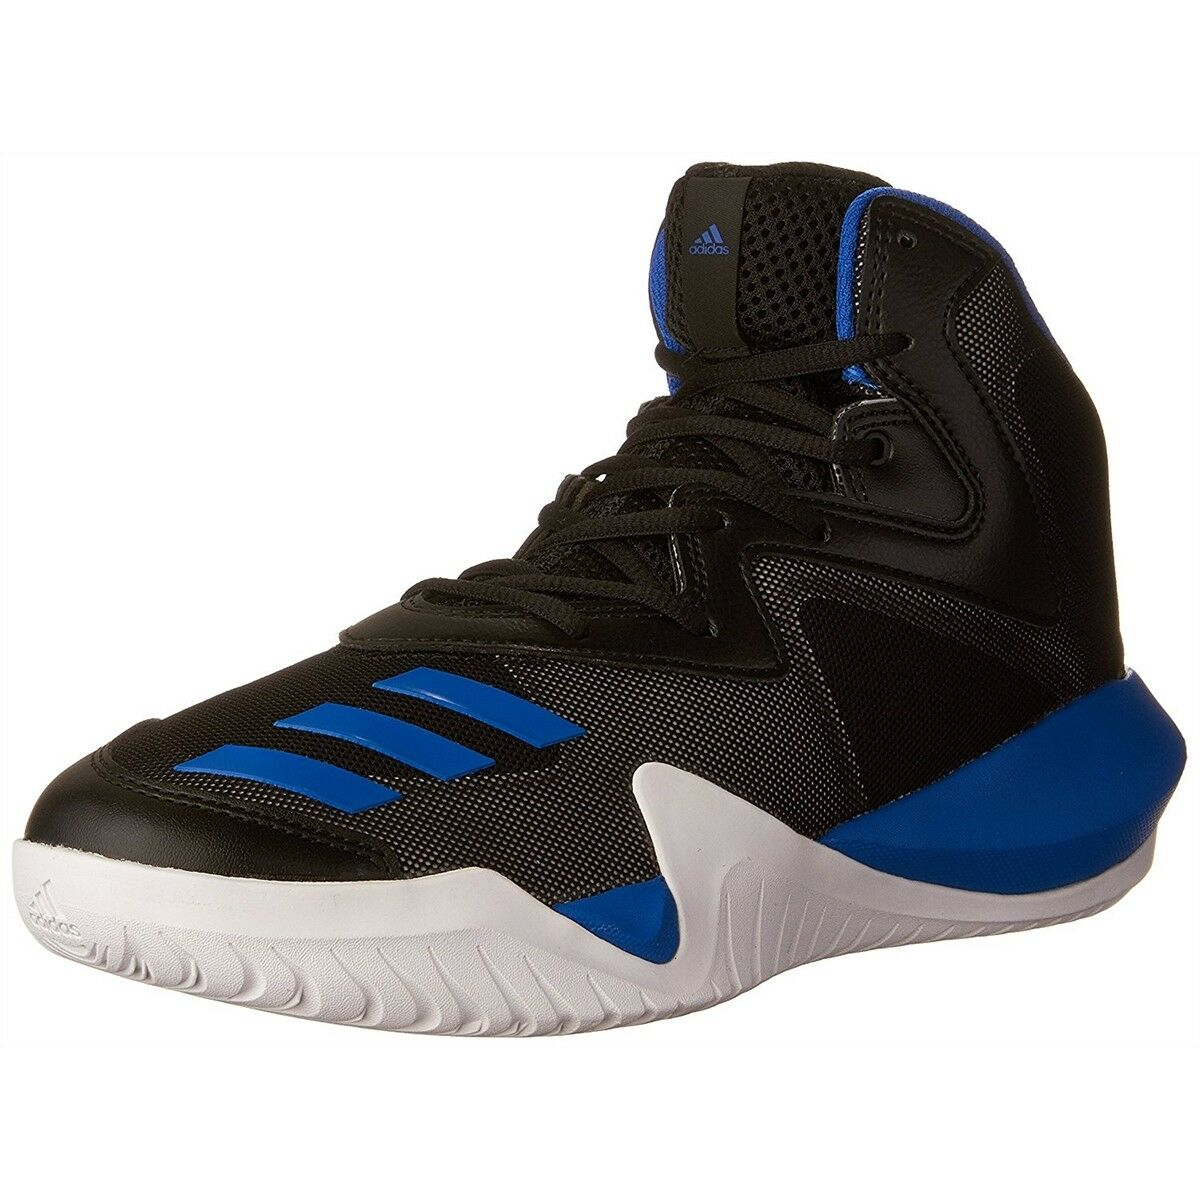 NEW Adidas hommes ADIPRENE Crazy Chaussures Team 2018 Basketball Chaussures Crazy Hi-Top Sneakers d1b62f